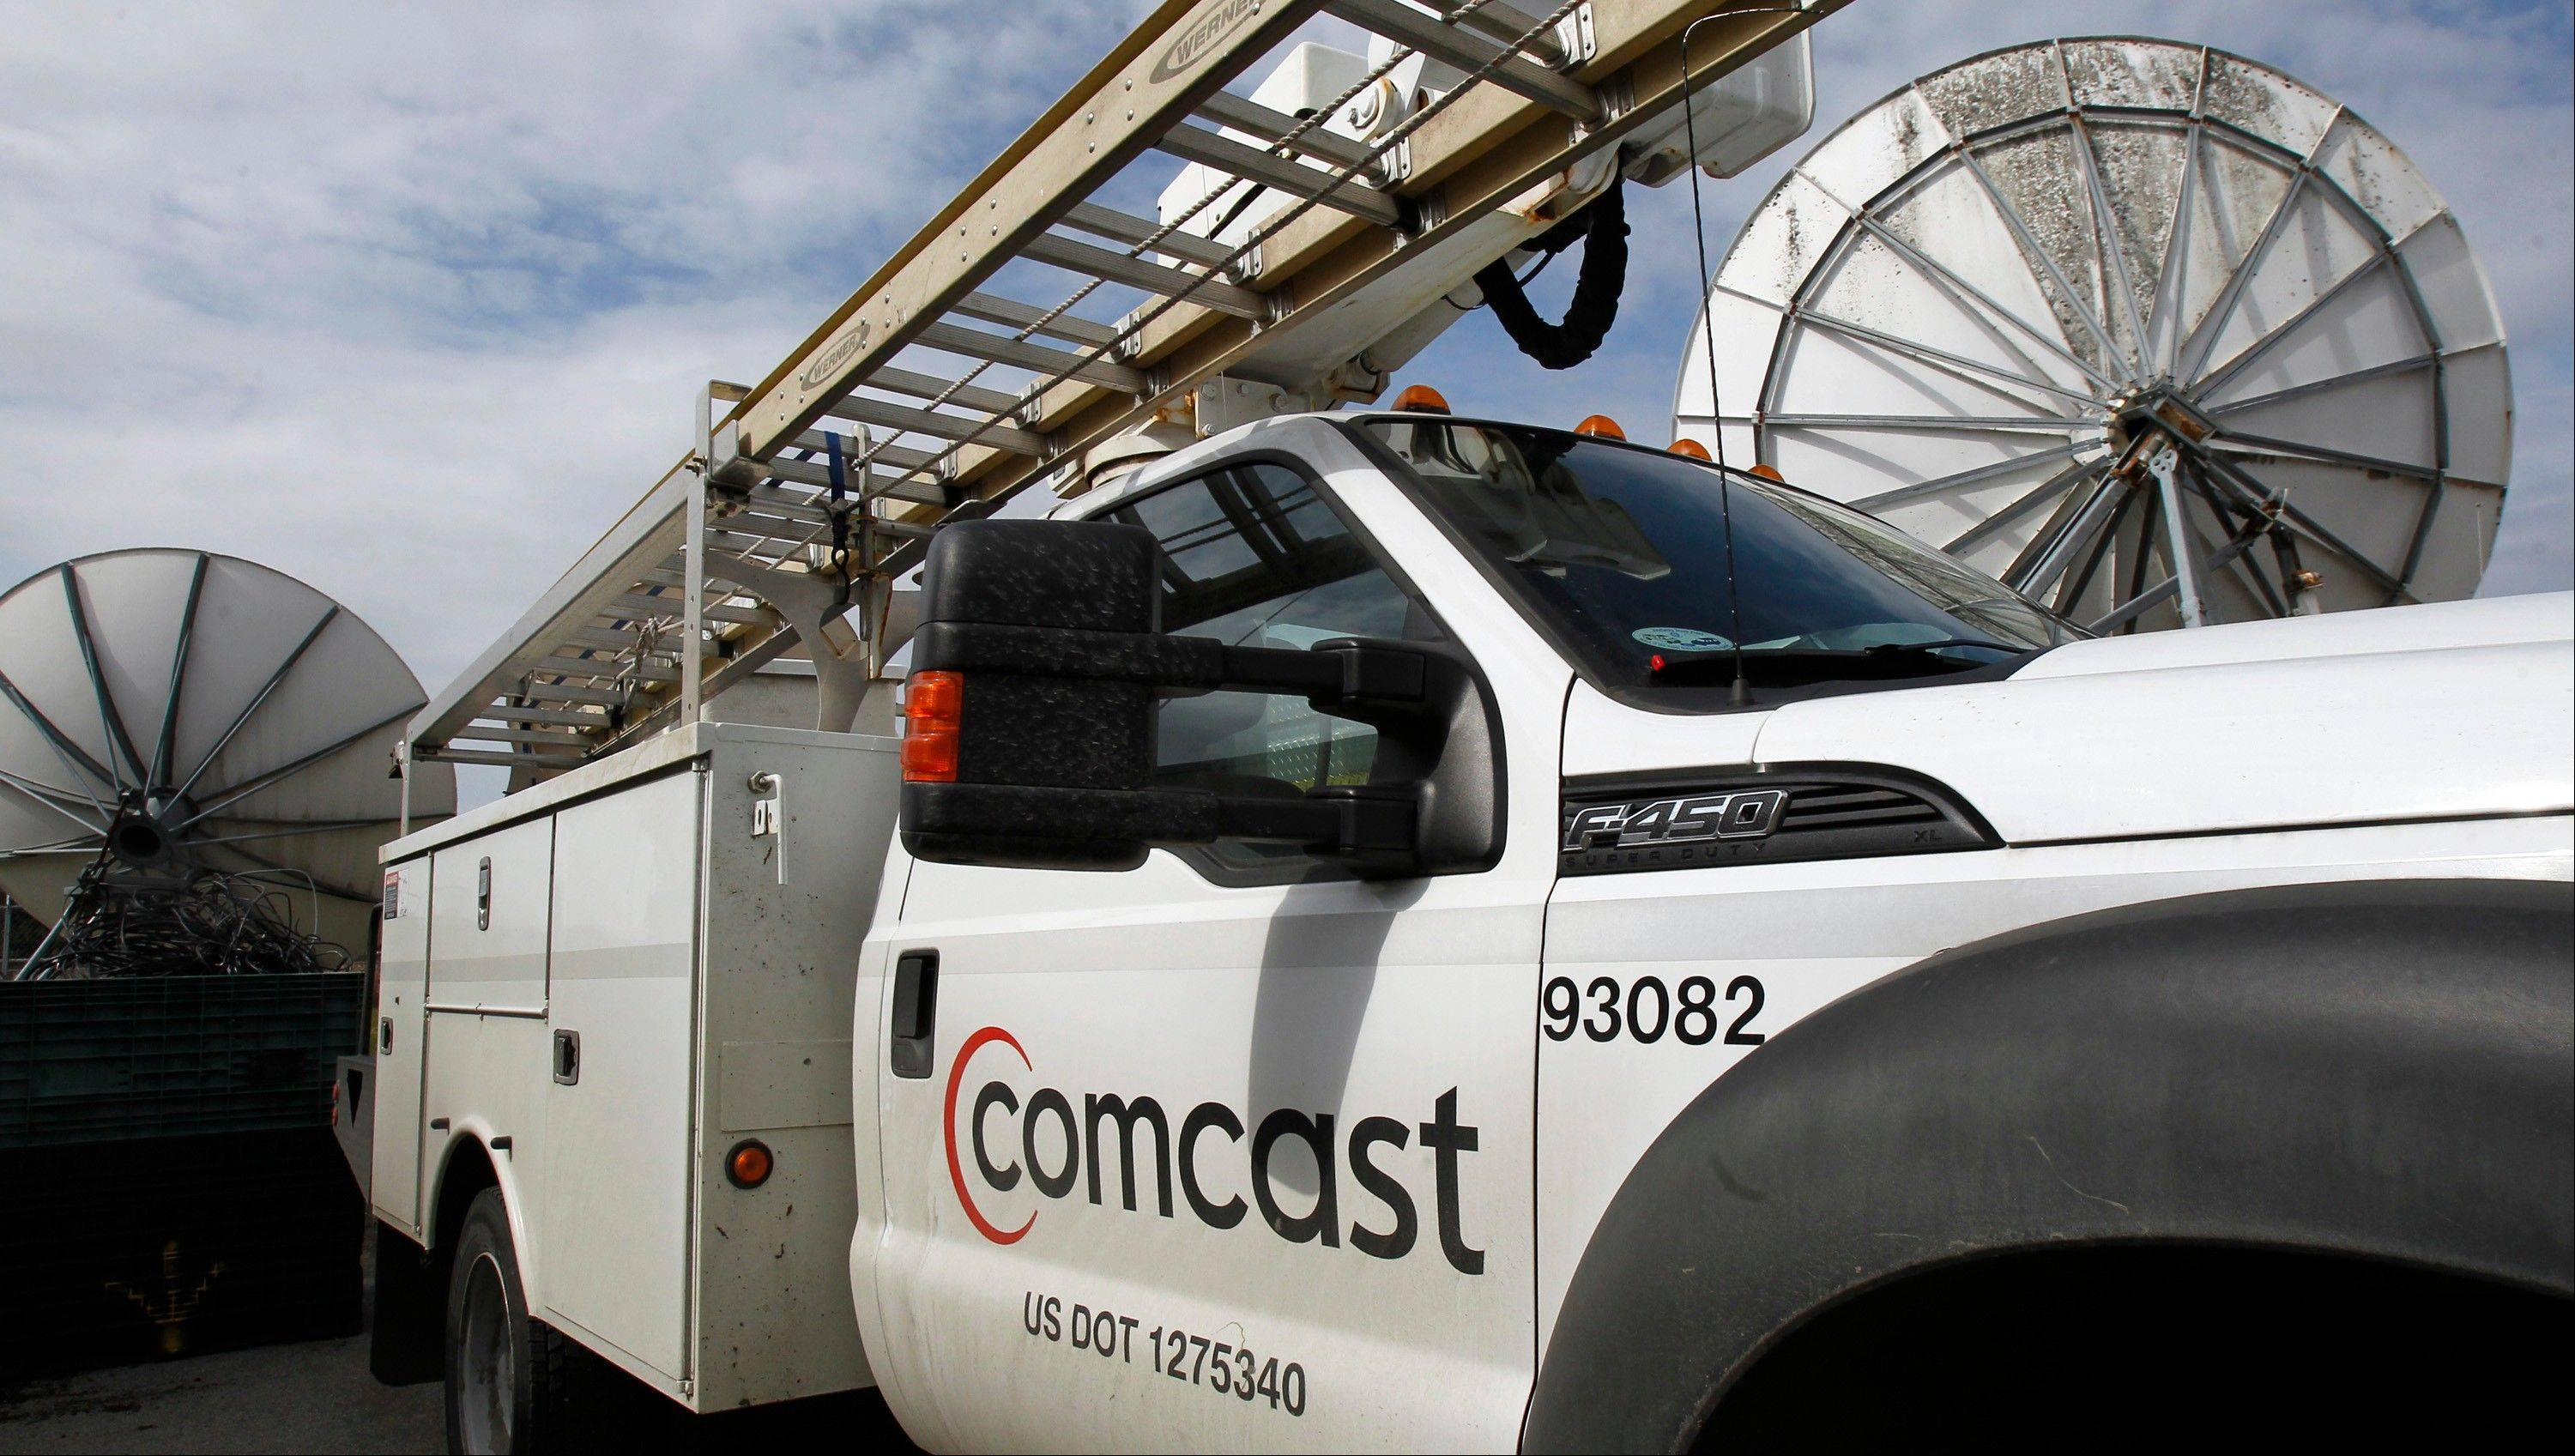 Comcast Corp., the nation's largest cable company and owner of NBCUniversal, on Wednesday said its net income rose 17 percent in the latest quarter, powered by continued strong results from its cable operations.